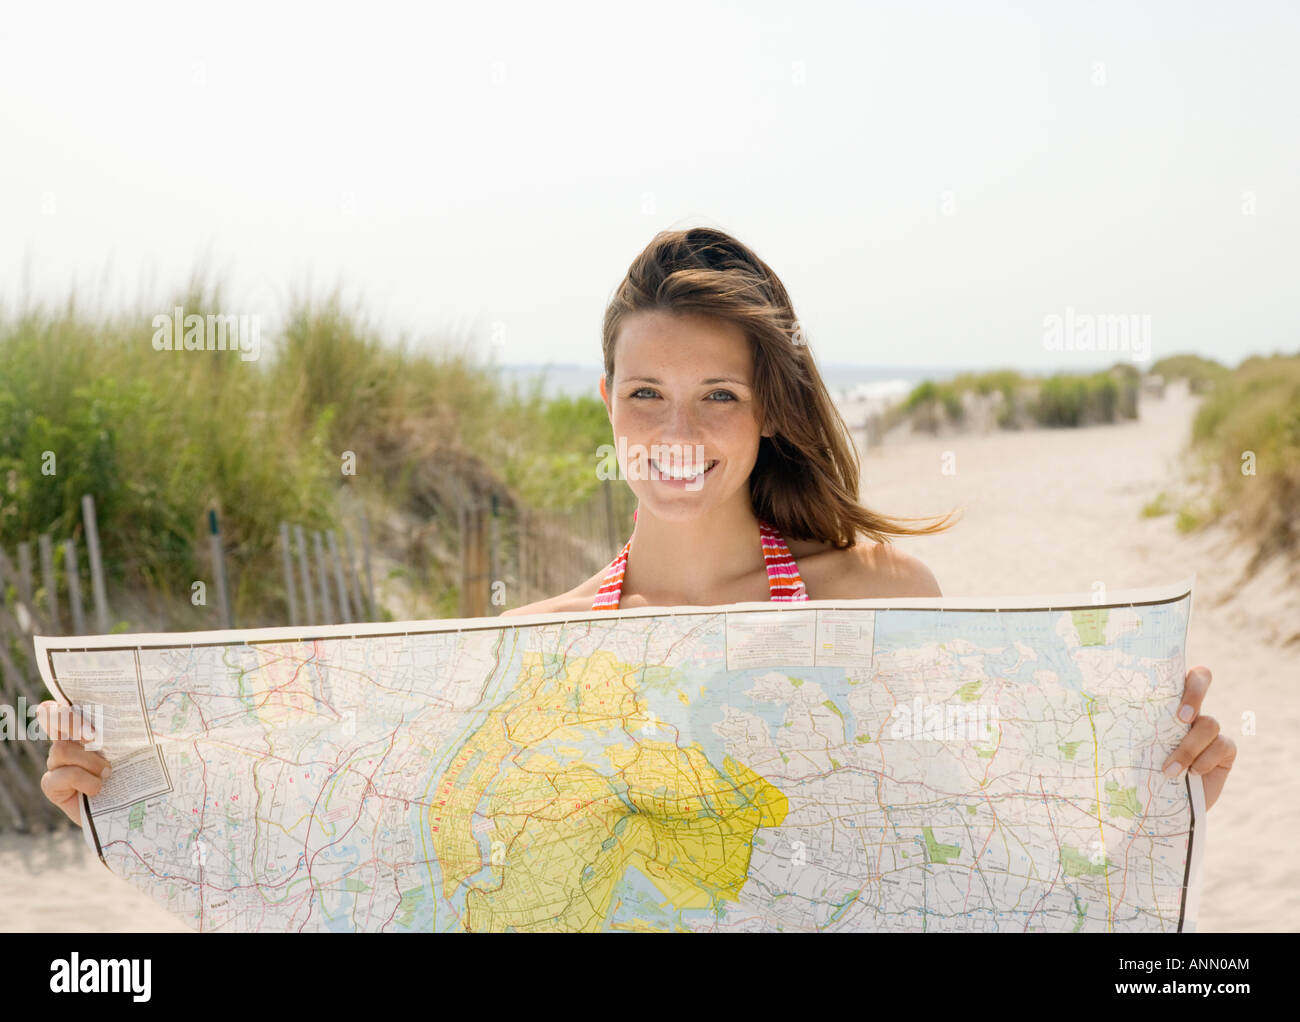 Woman holding map at beach - Stock Image